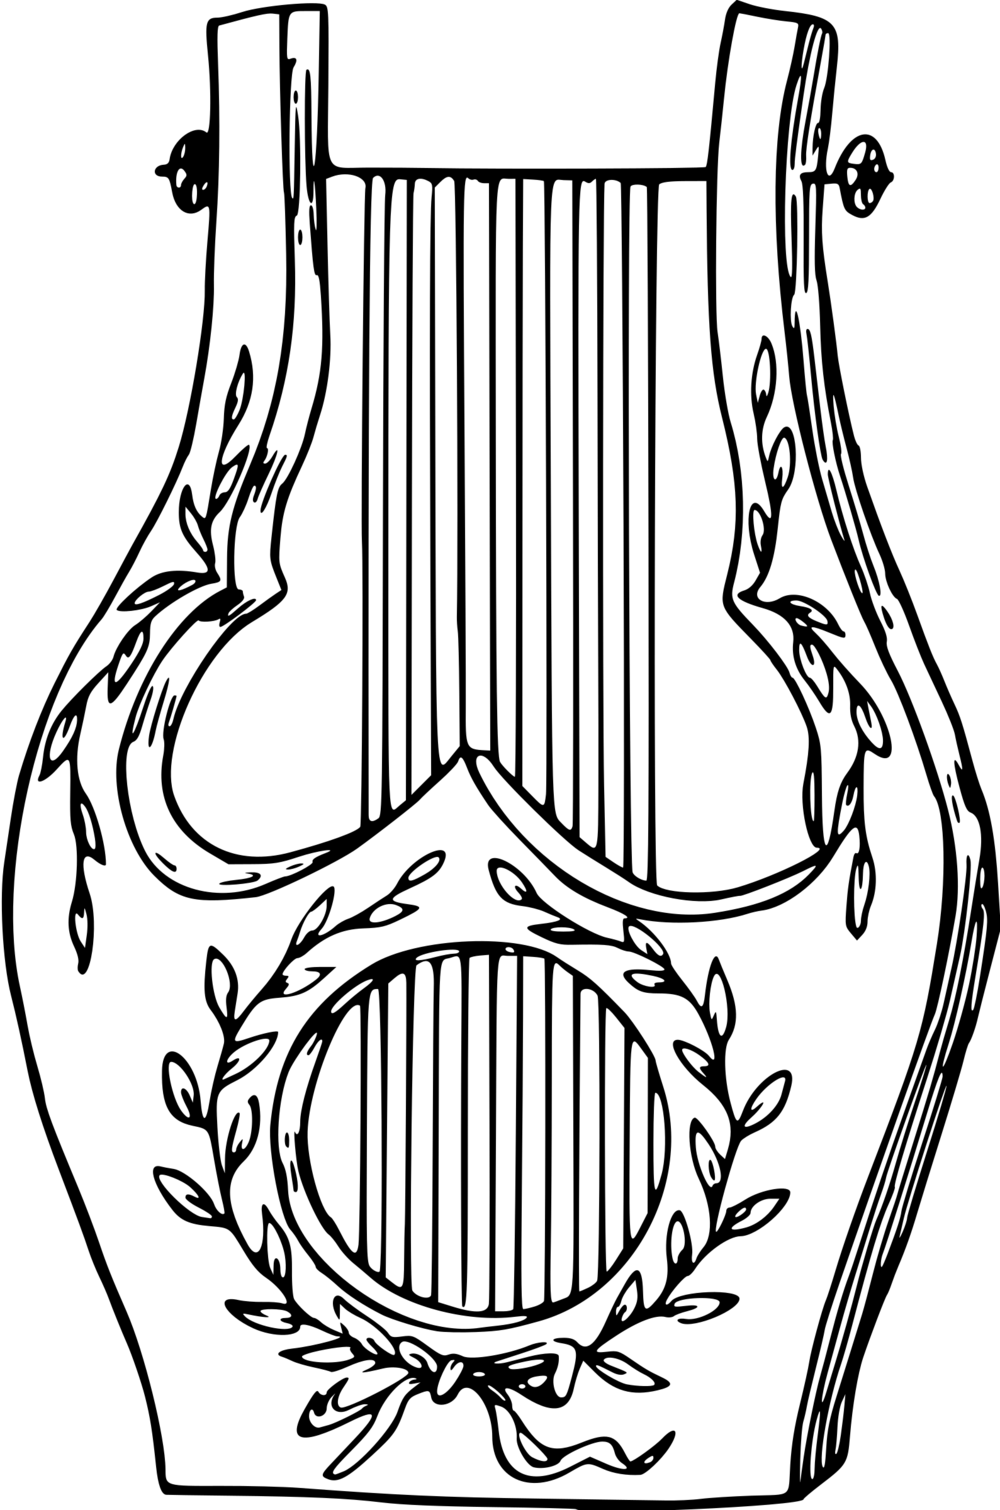 Lyre-2400px.png